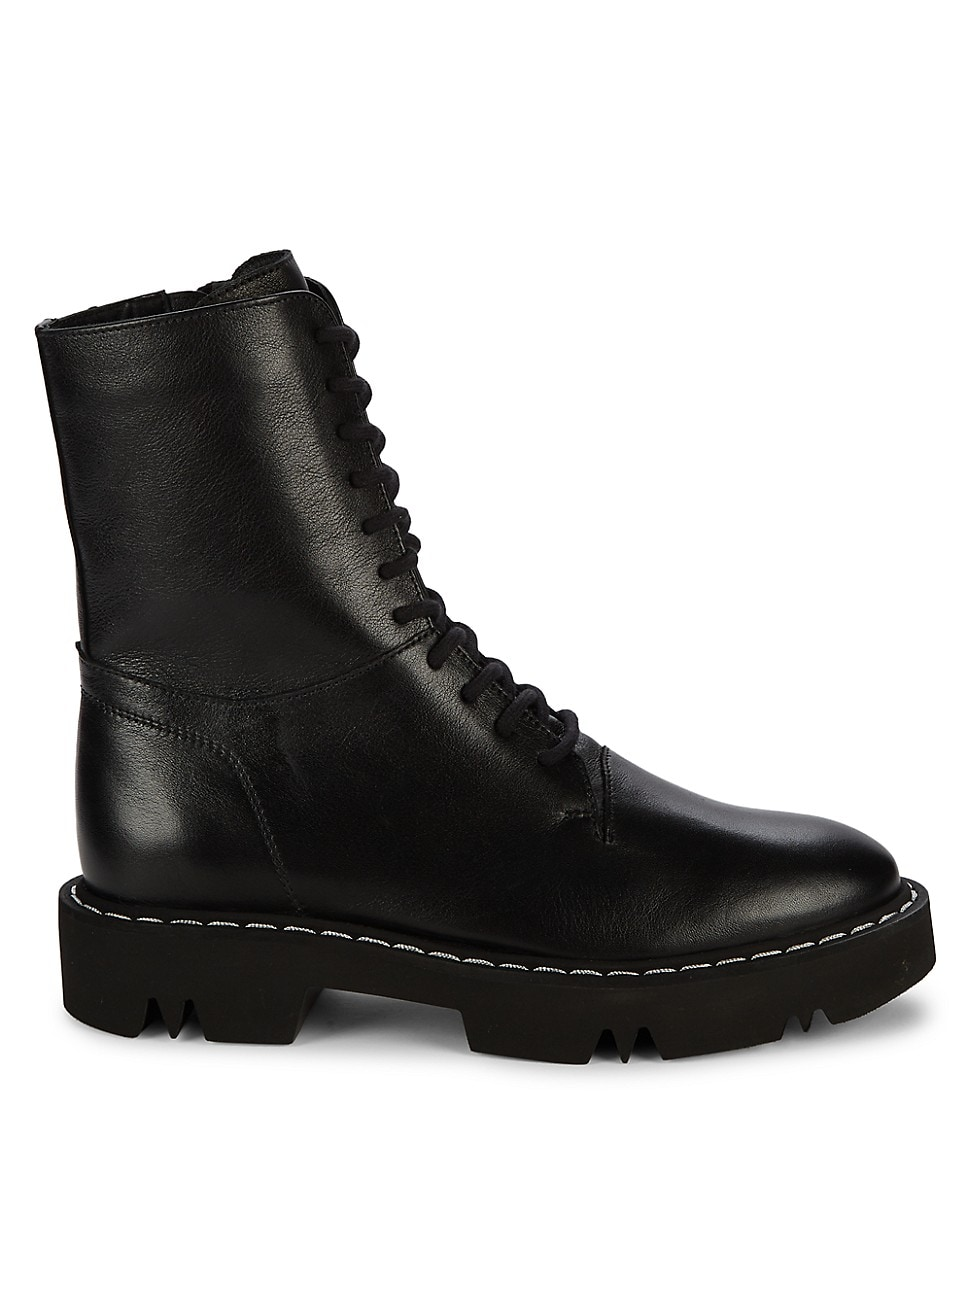 Aquatalia WOMEN'S HANA LEATHER COMBAT BOOTS